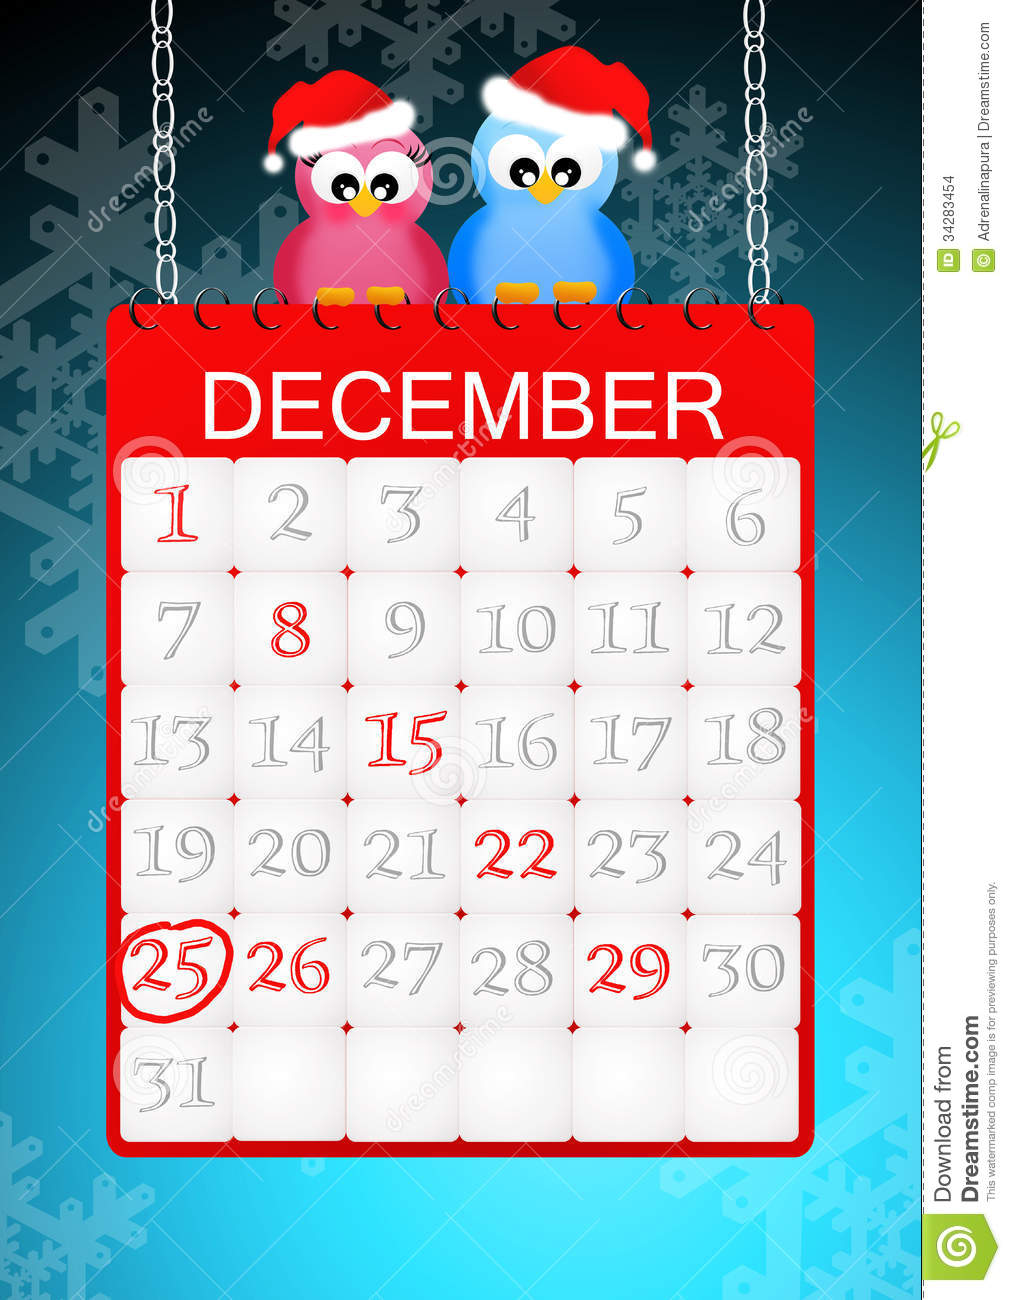 Christmas Calendar Illustration : Christmas calendar page stock images image